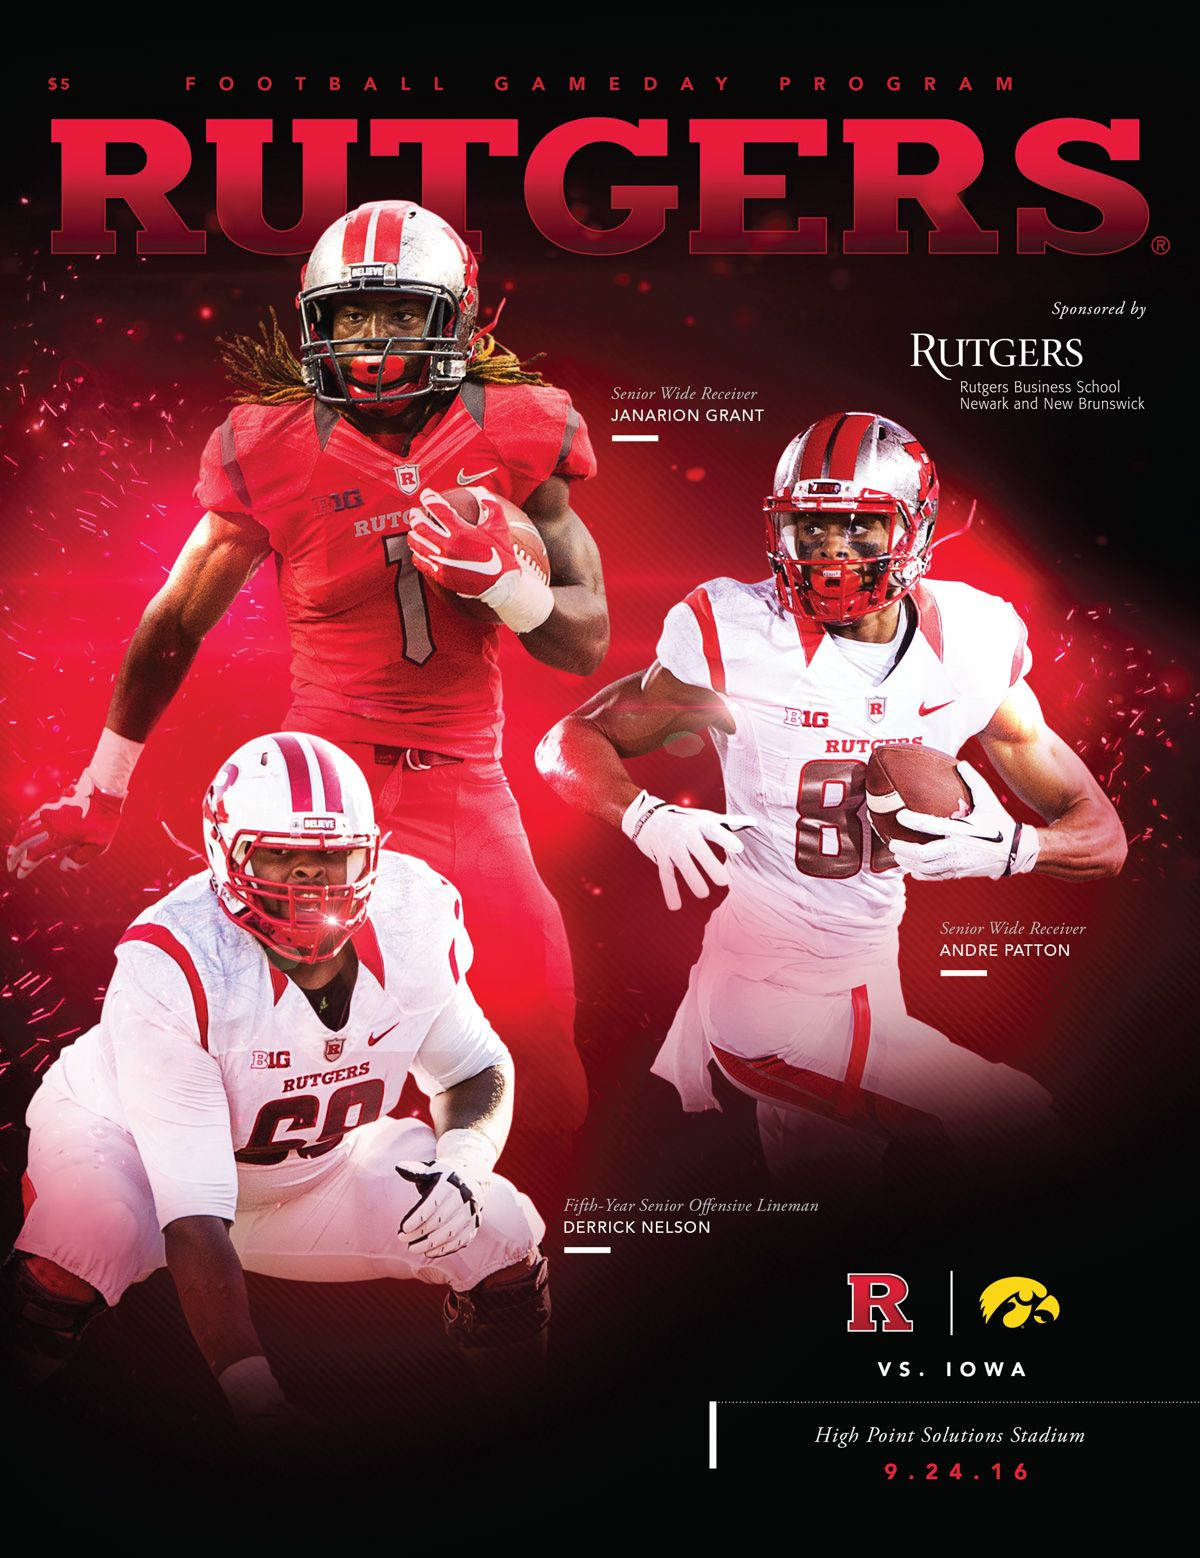 The 2016 Rutgersu Football Gameday Program Vs Iowa Features Seniors Andrew Patton Janarion Grant And 5th Year Senior Der Football Program Football Lineman